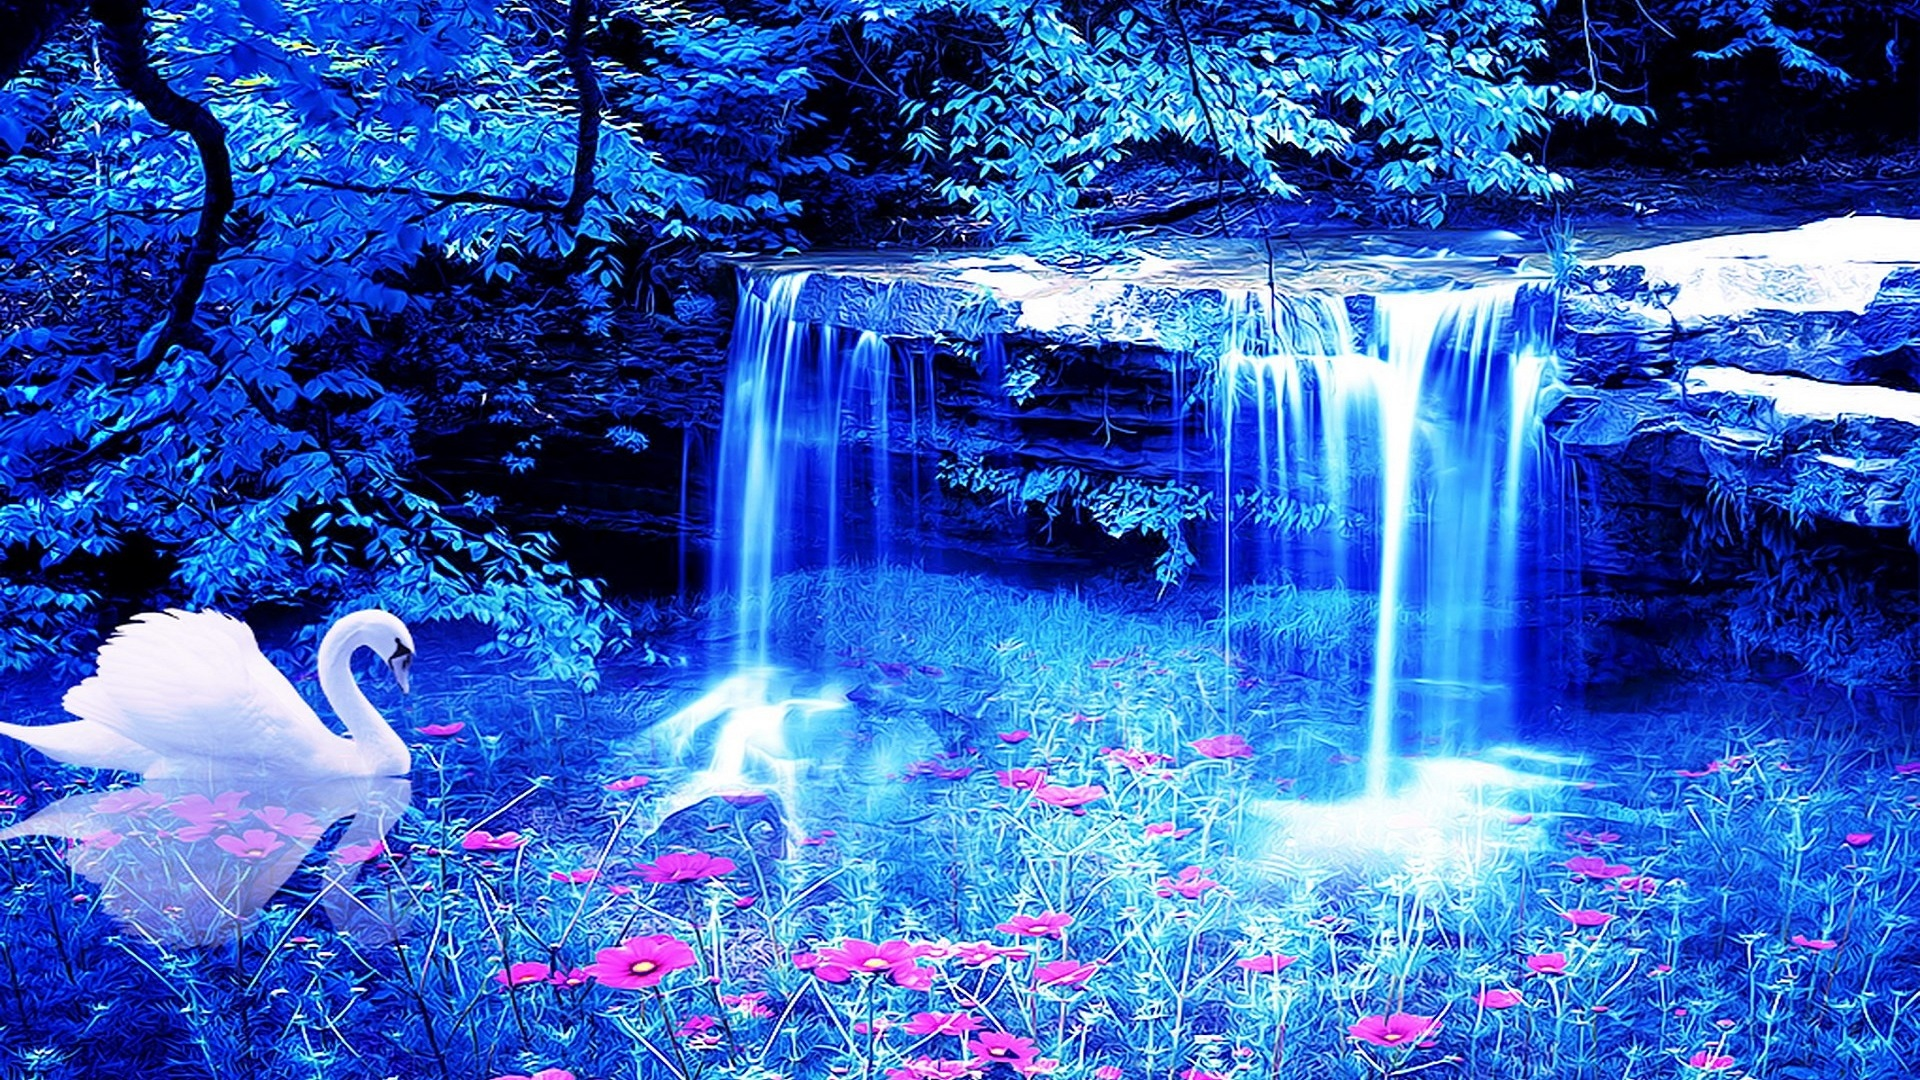 Beautiful waterfalls hd wallpaper background free for desktop hd beautiful waterfalls hd wallpaper background free for desktop voltagebd Image collections